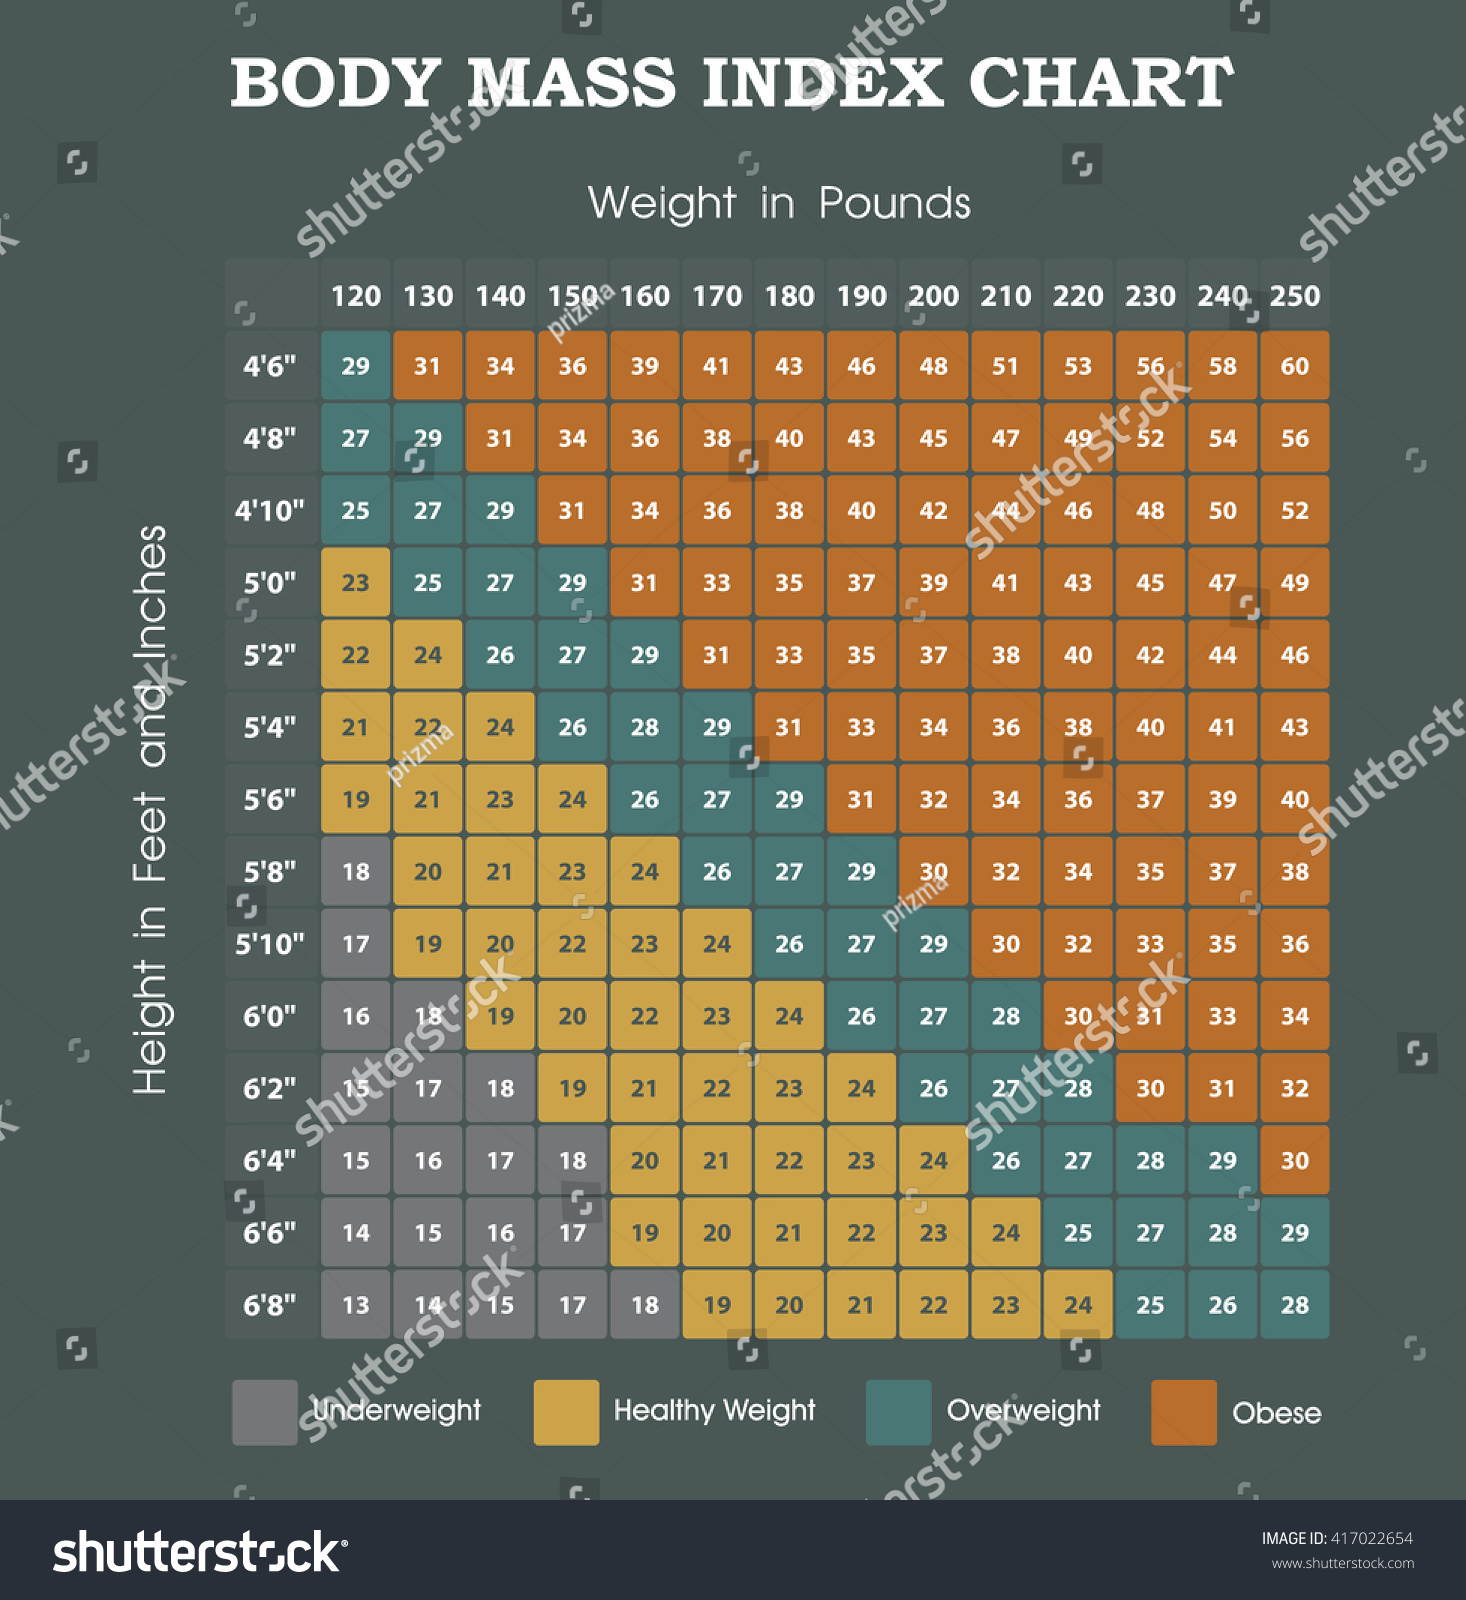 bmi body mass index essay